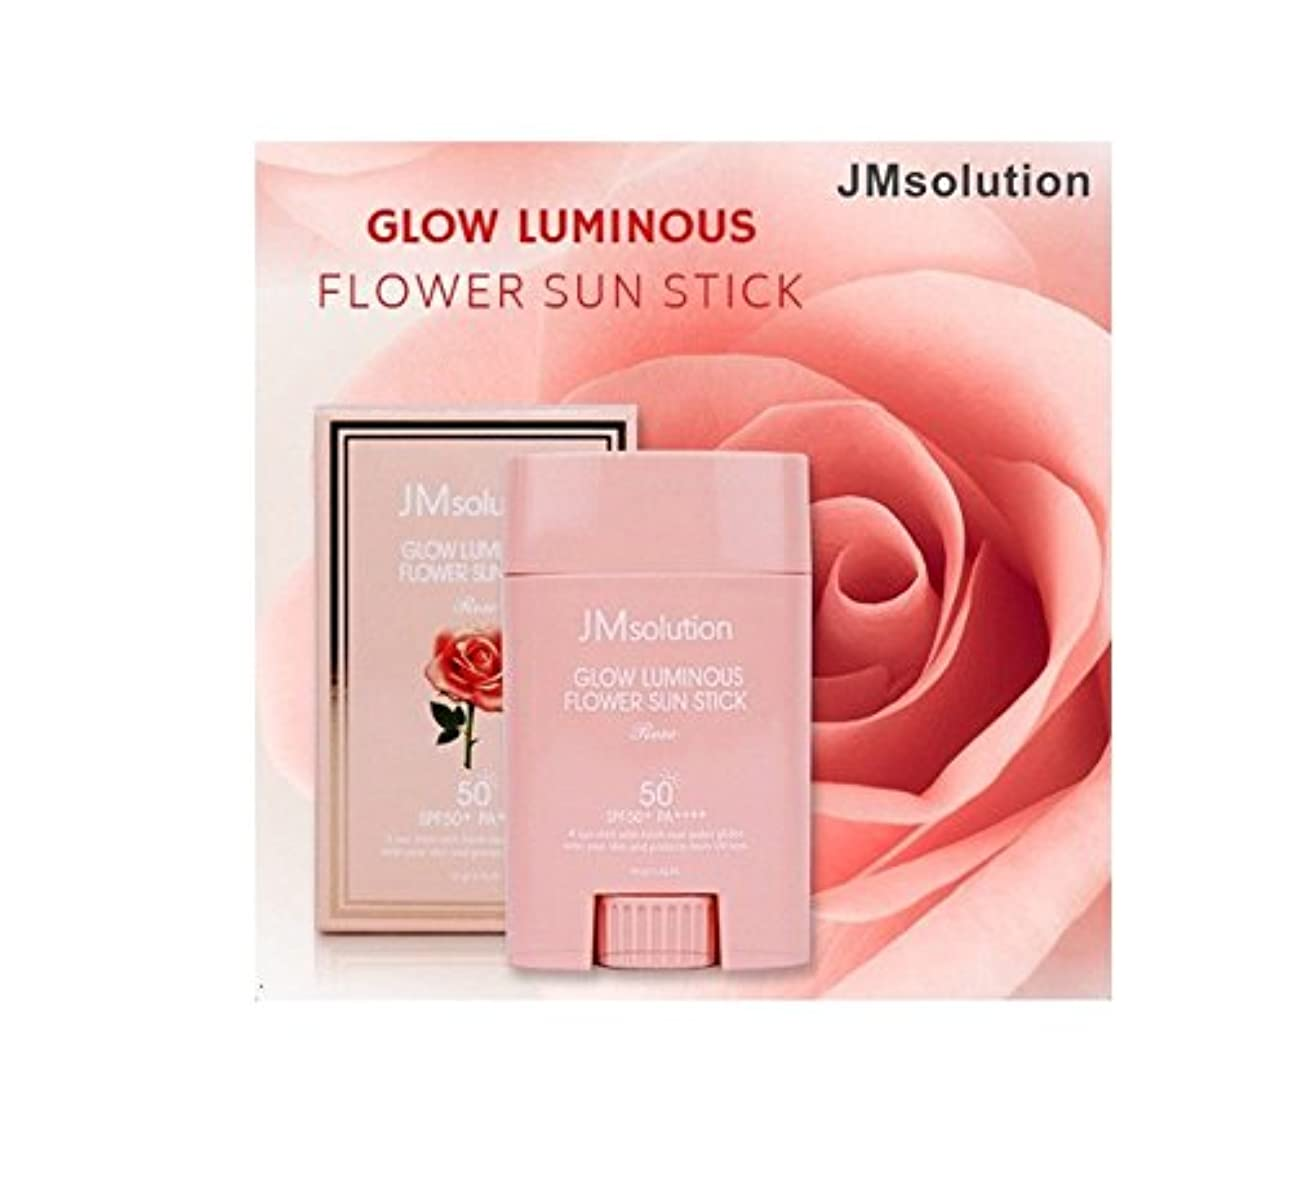 ブローホールエコーバッテリーJM Solution Glow Luminous Flower Sun Stick Rose 21g (spf50 PA) 光る輝く花Sun Stick Rose